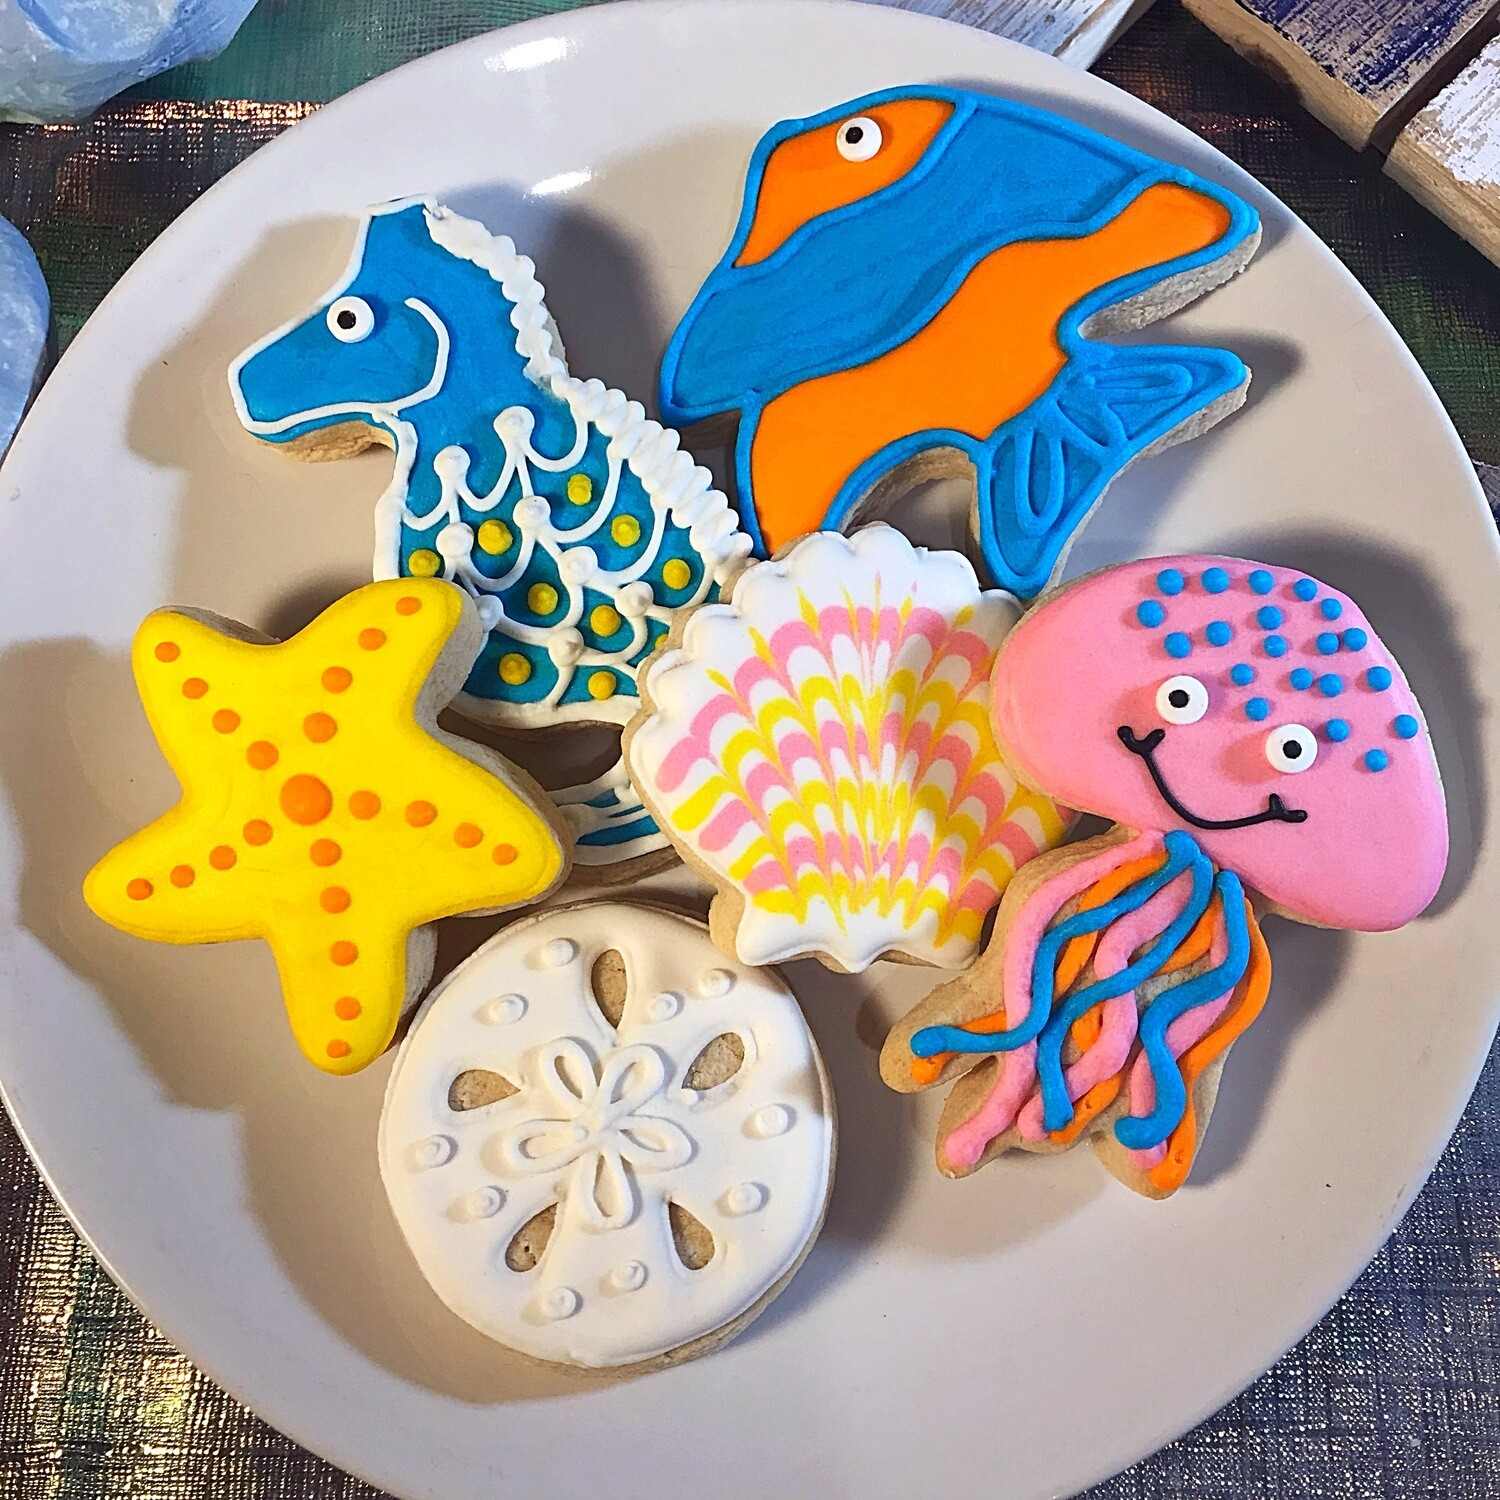 SEA SIDE Decorating Workshop - TUESDAY, JULY 30, 2019 at 2 p.m. (GOOD JUJU) BYOB